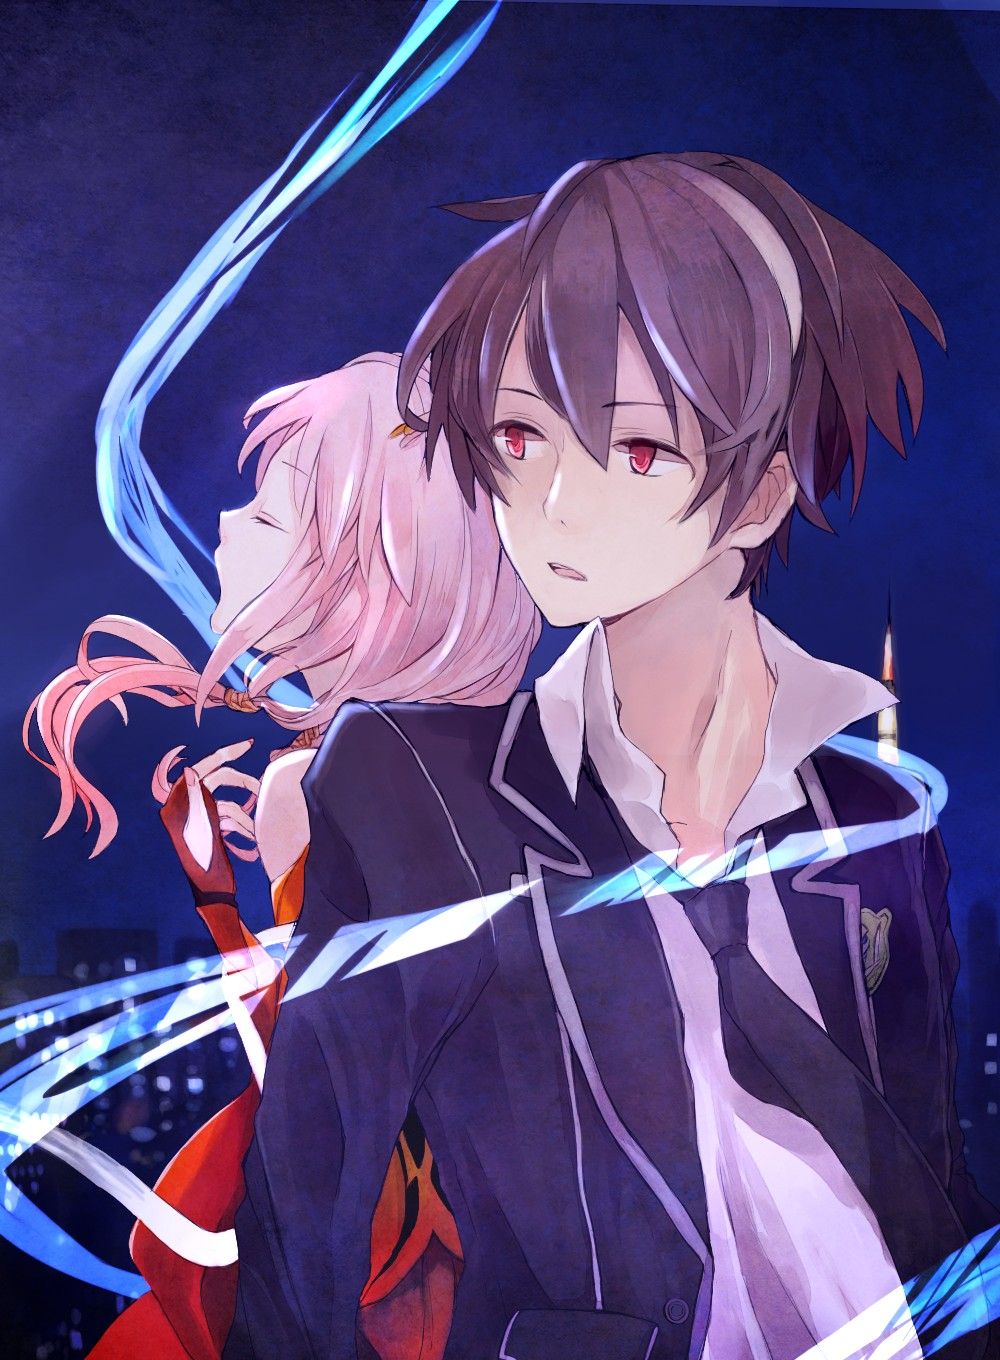 Anime Manga Wallpaper Guilty Crown Page 21 Of 88 Zerochan Anime Image Board